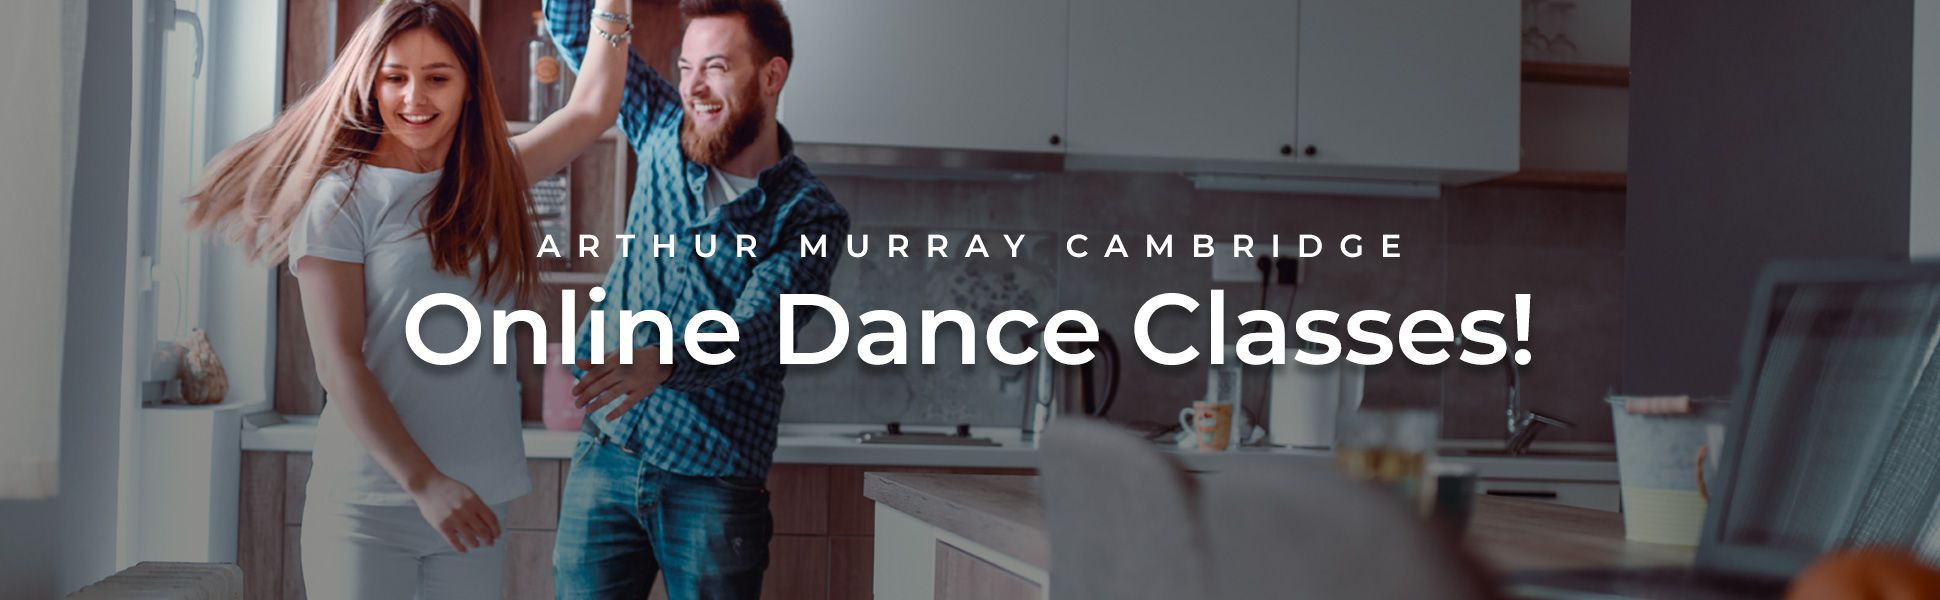 Arthur Cambridge Murray Online Dance Classes